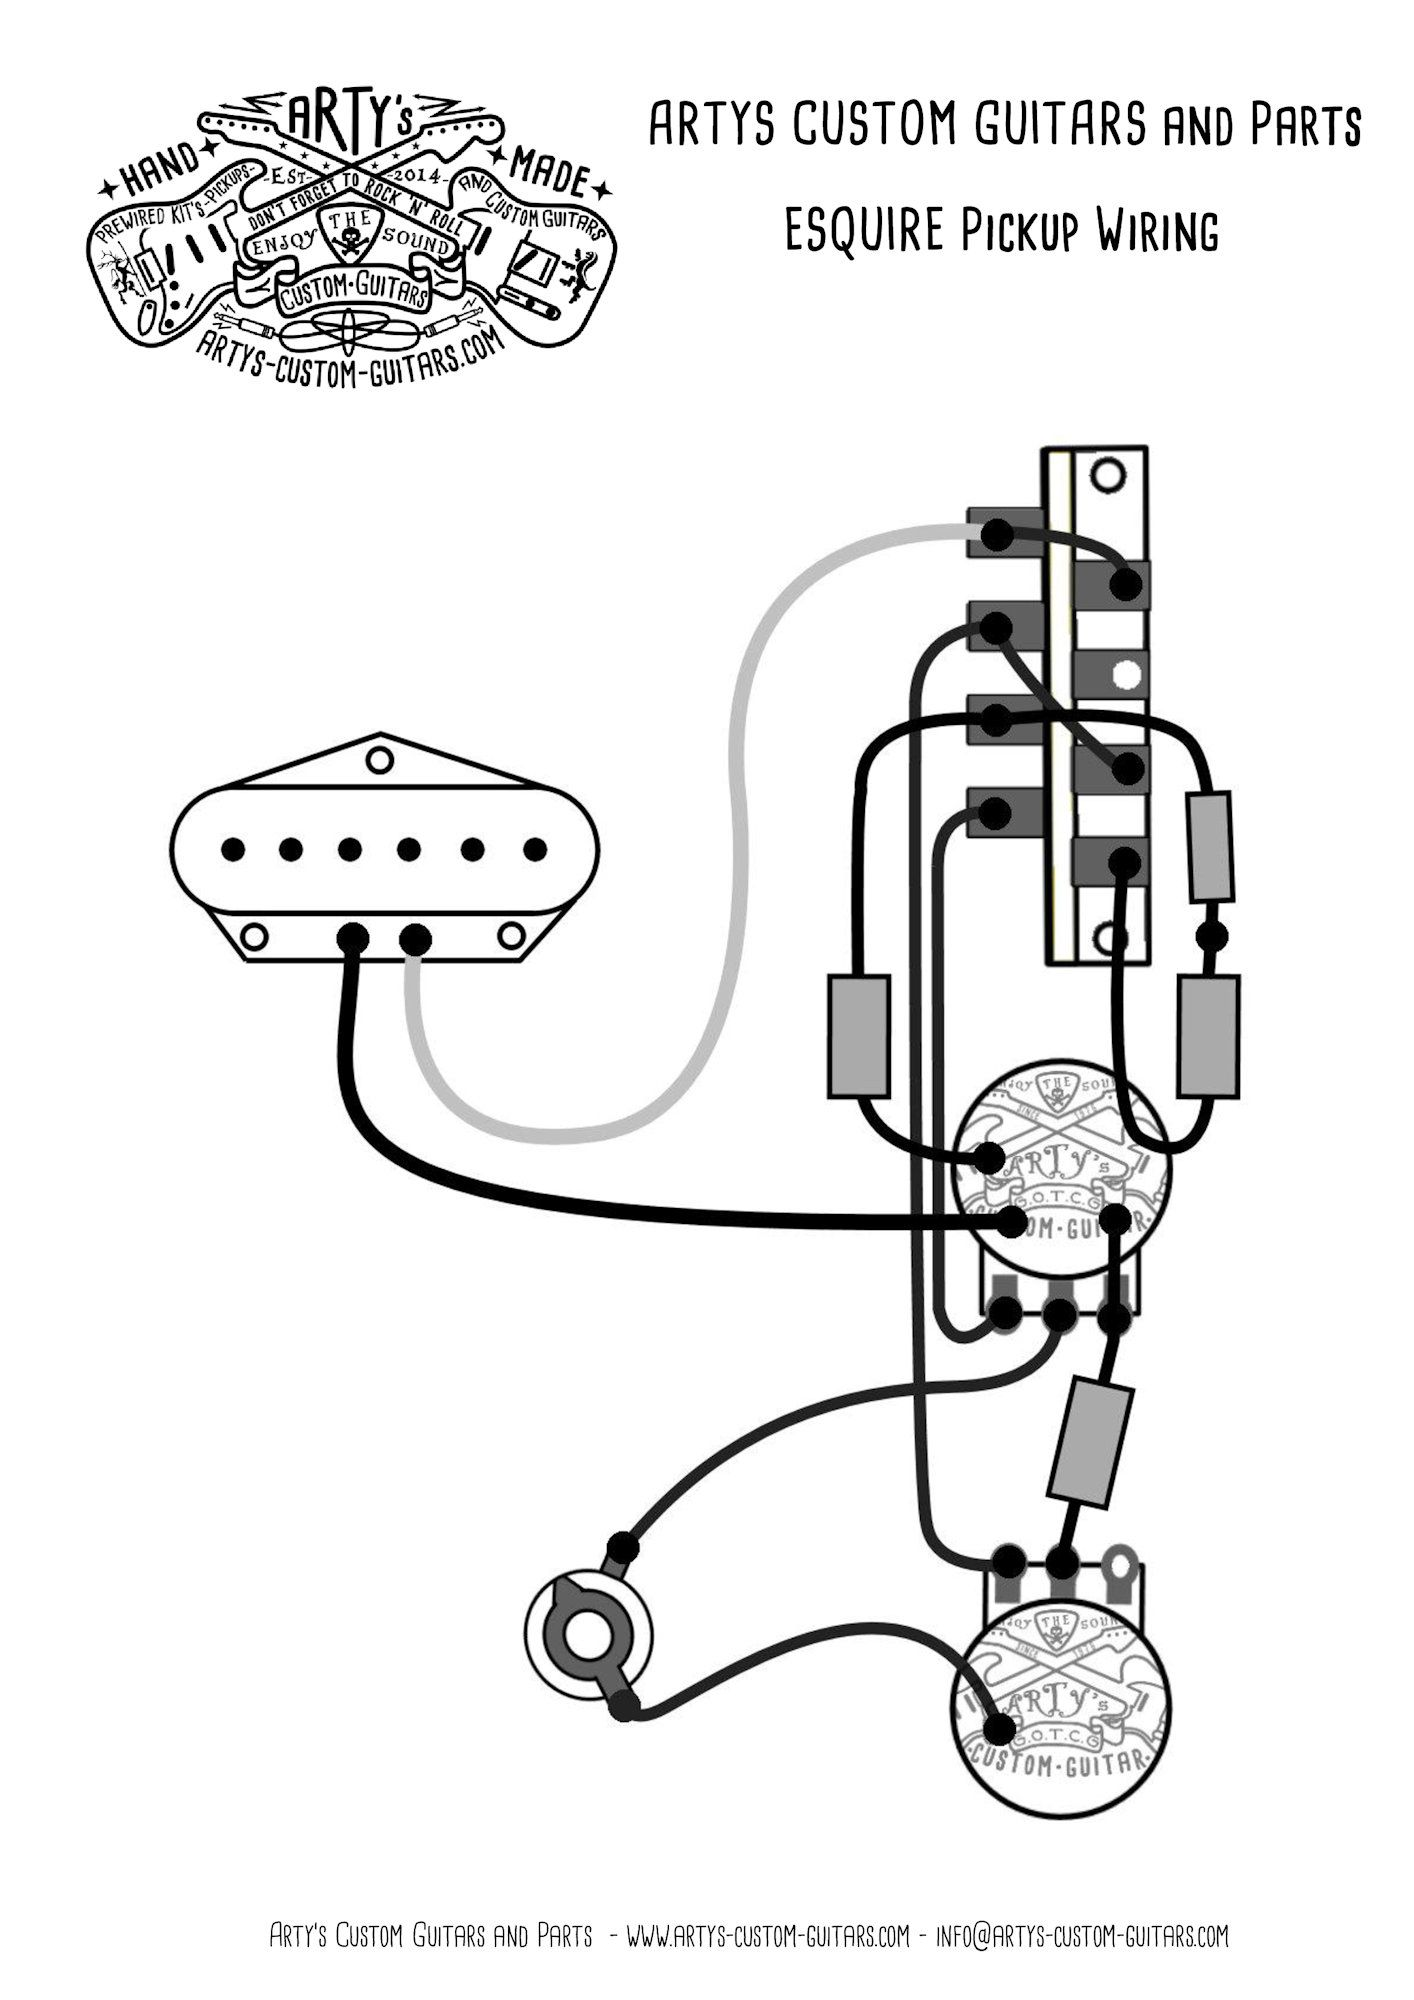 esquire wiring diagram prewired kit arty s custom guitars [ 1414 x 2000 Pixel ]